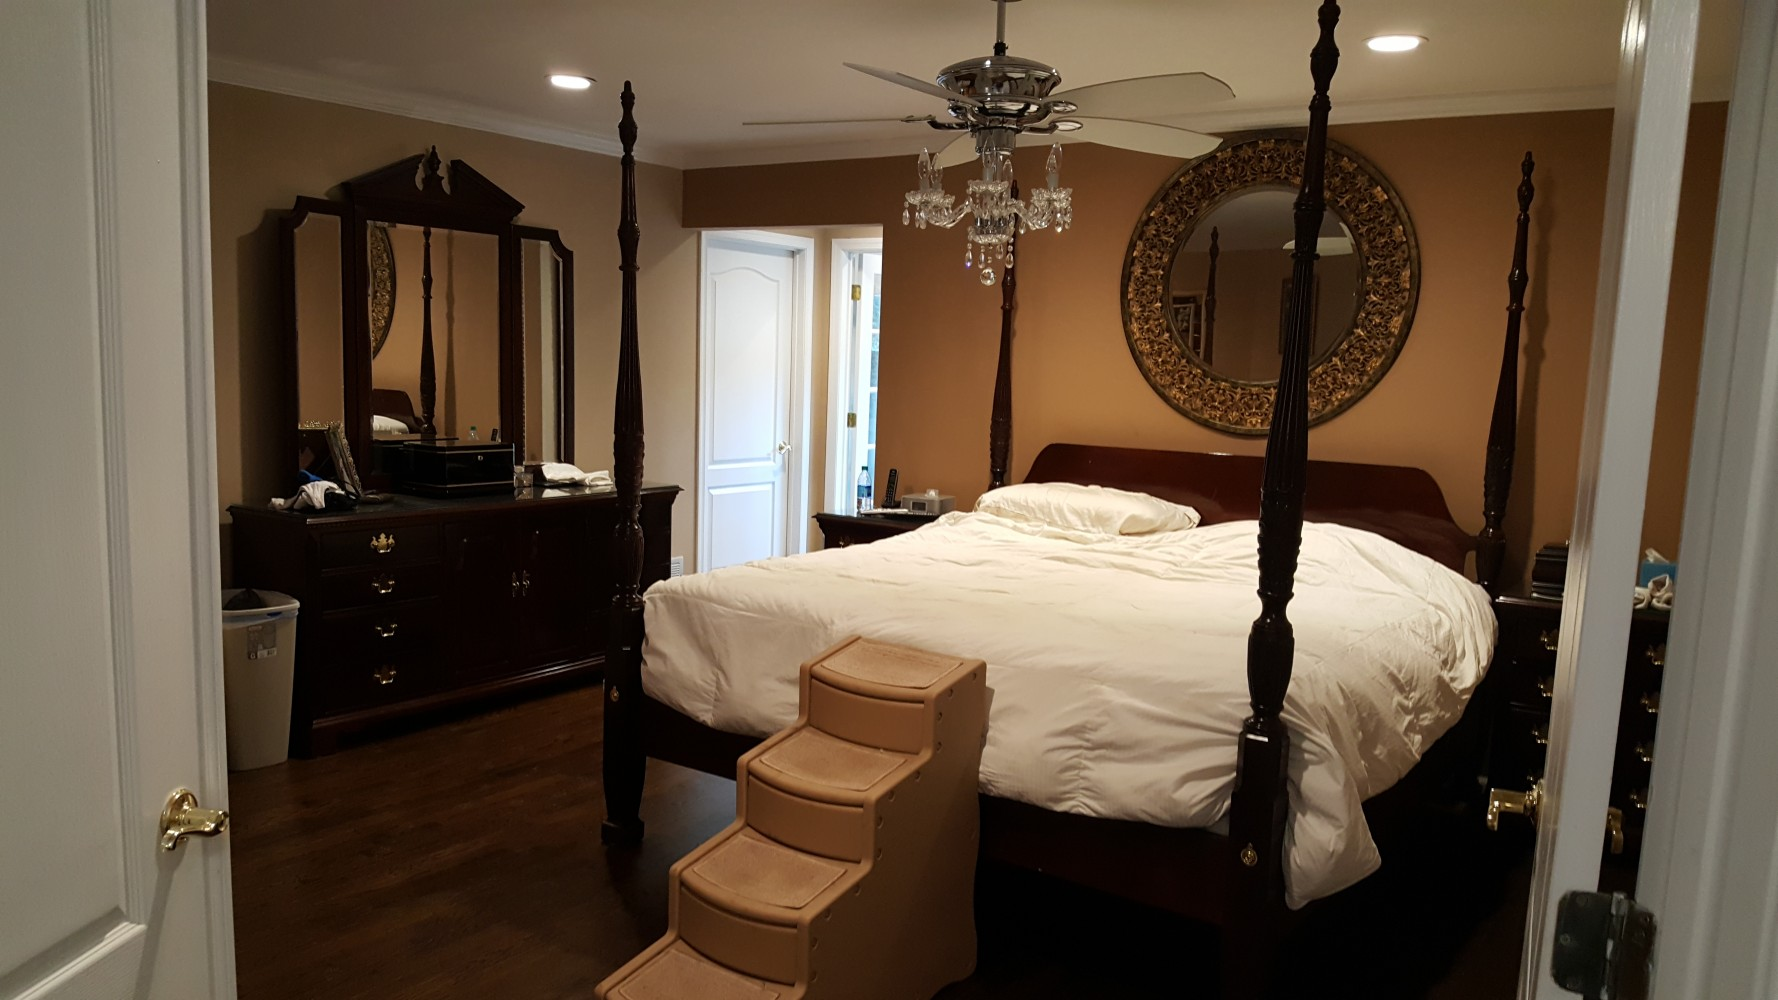 Master Bedroom before photo project by NJ interior design firm Distinctive Interior Designs